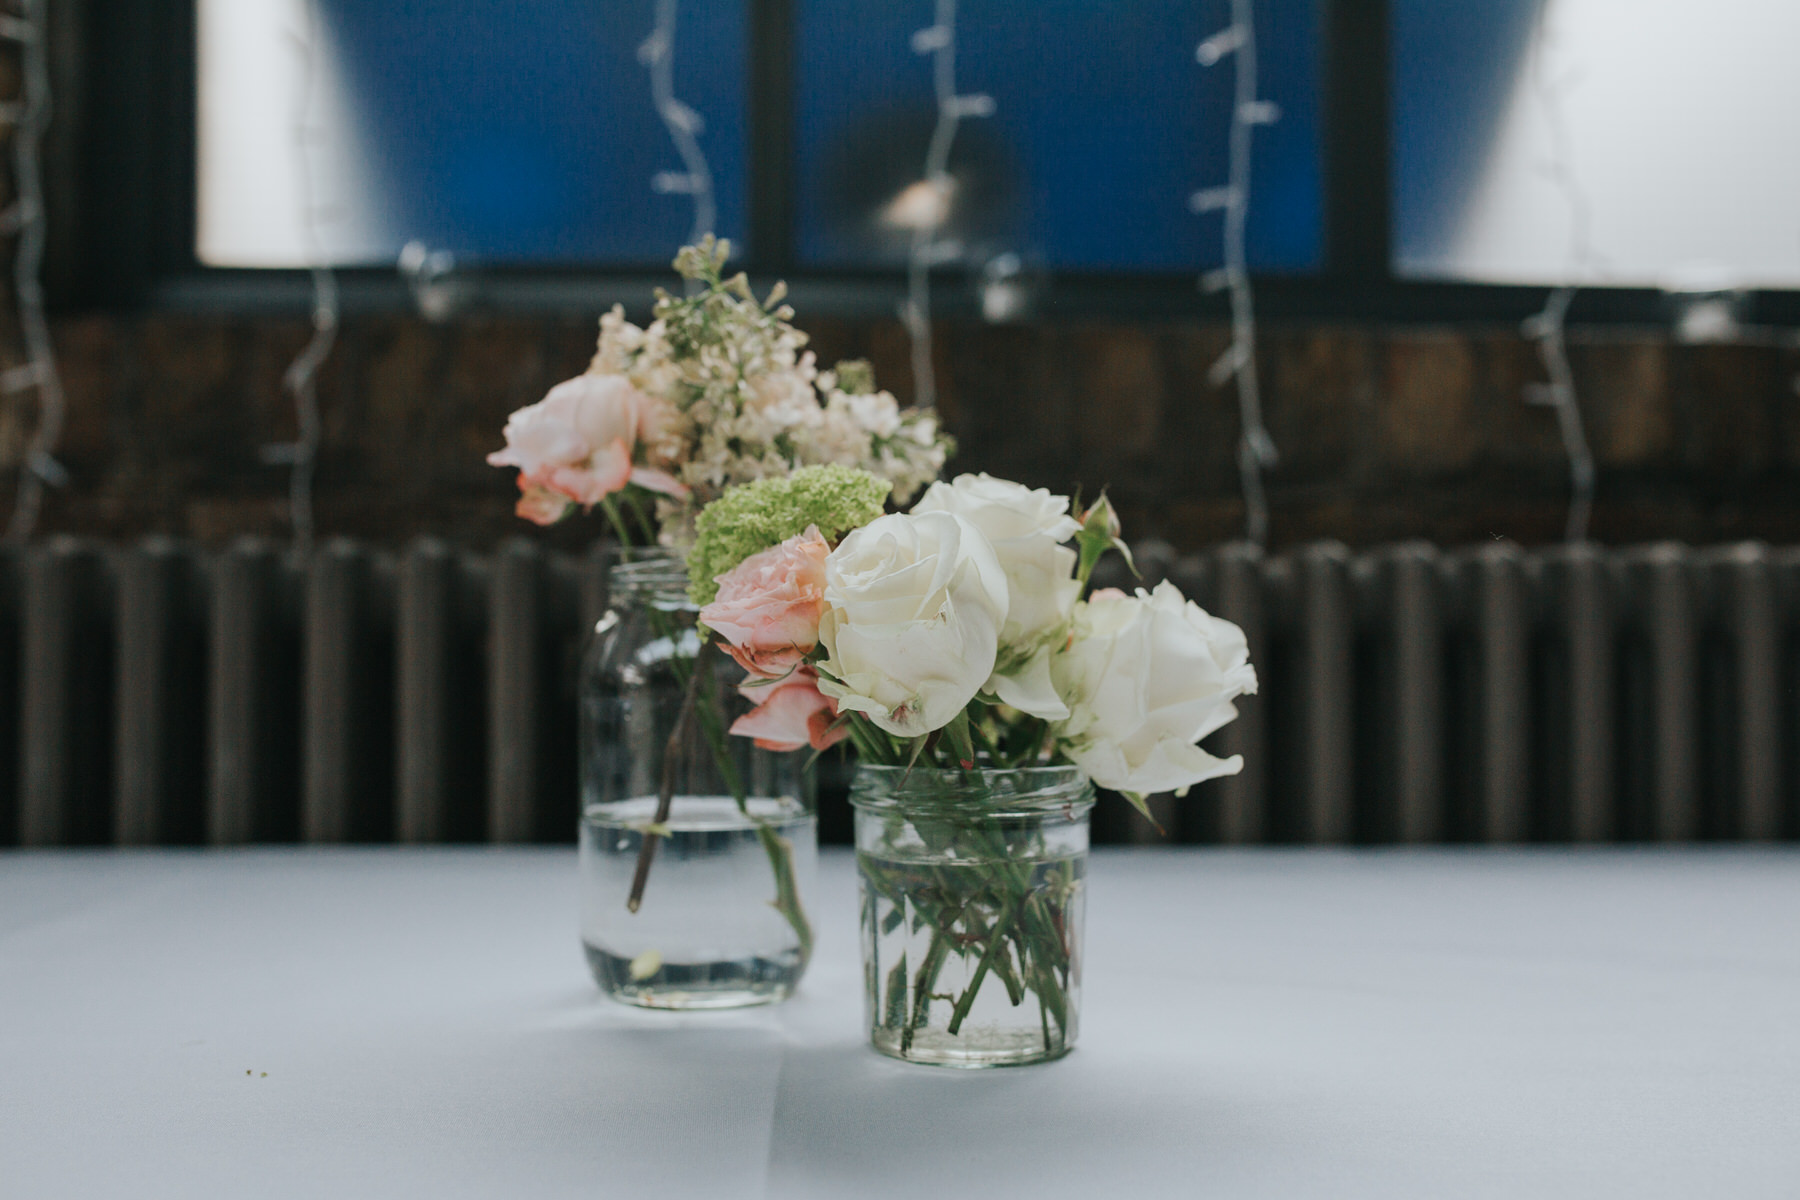 20-St Chads Place wedding rose floral posies.jpg